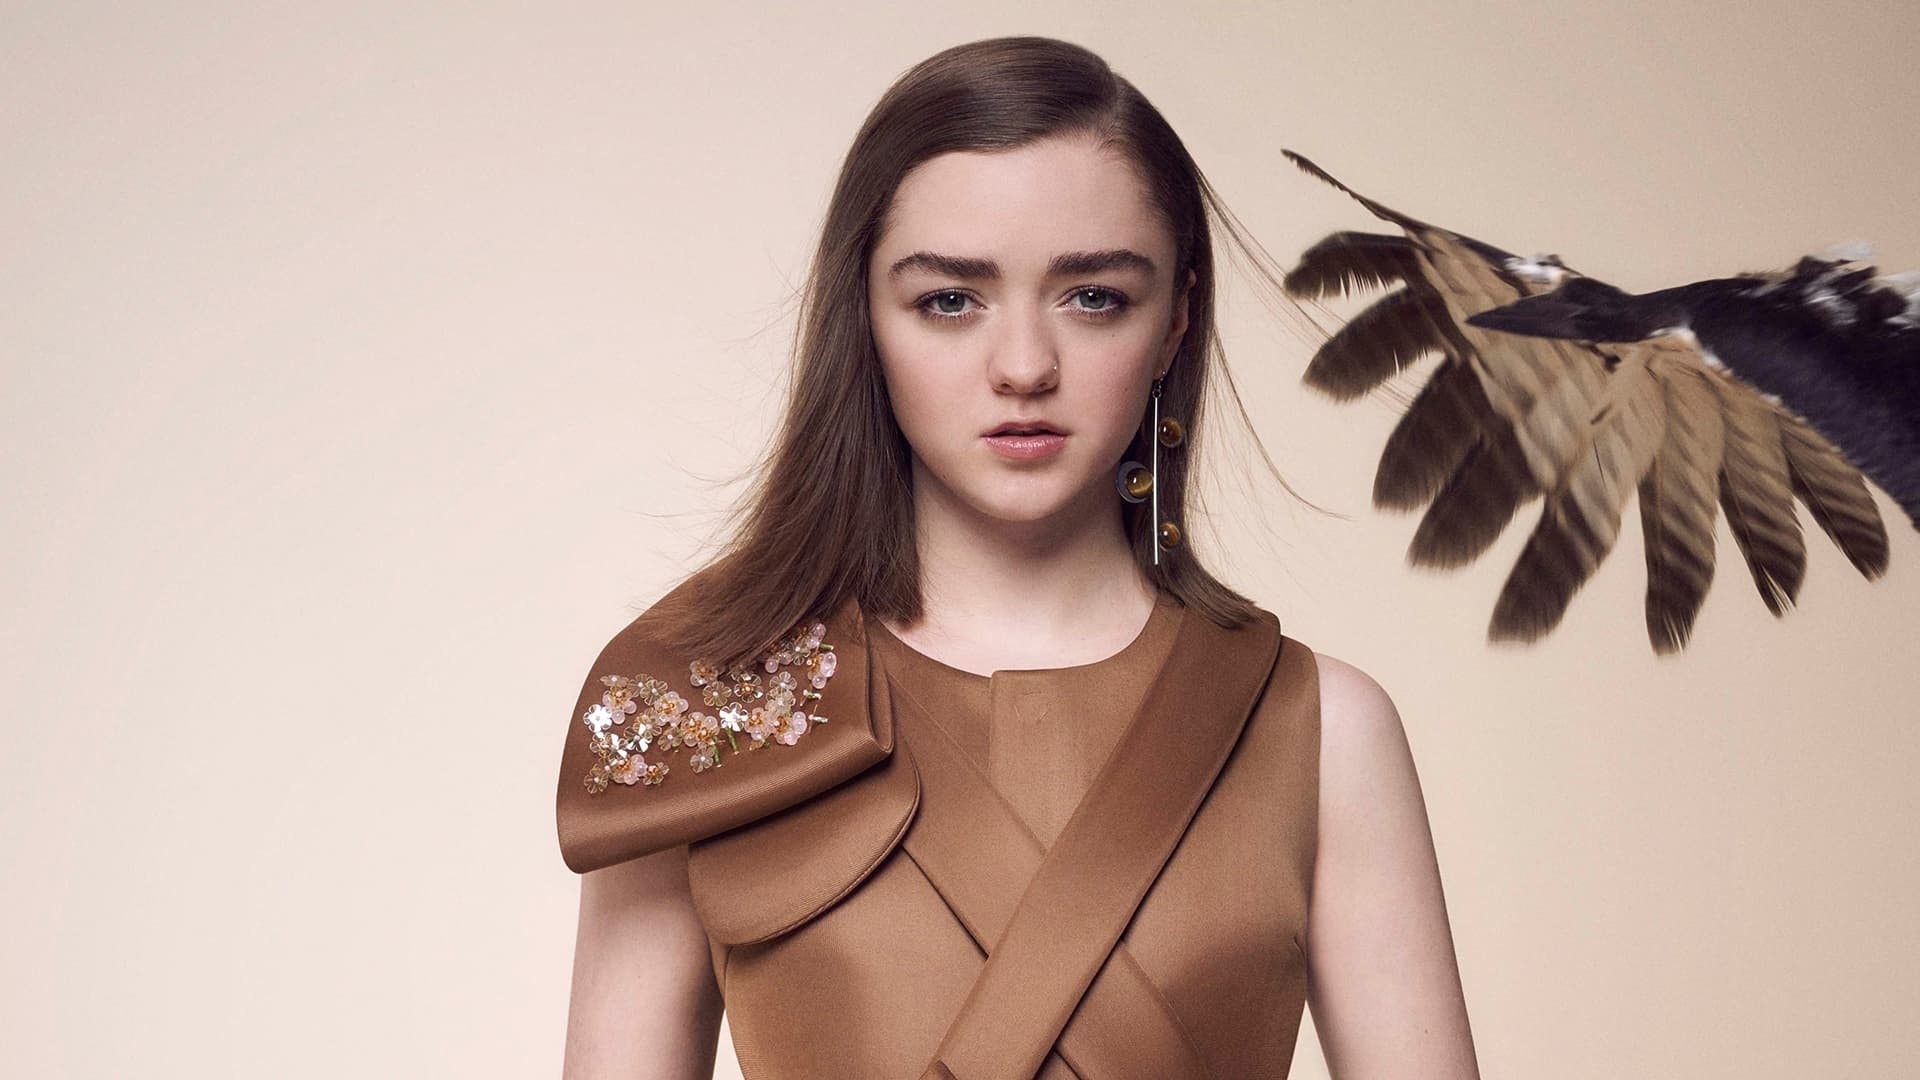 Maisie Williams High Resolution wallpaper